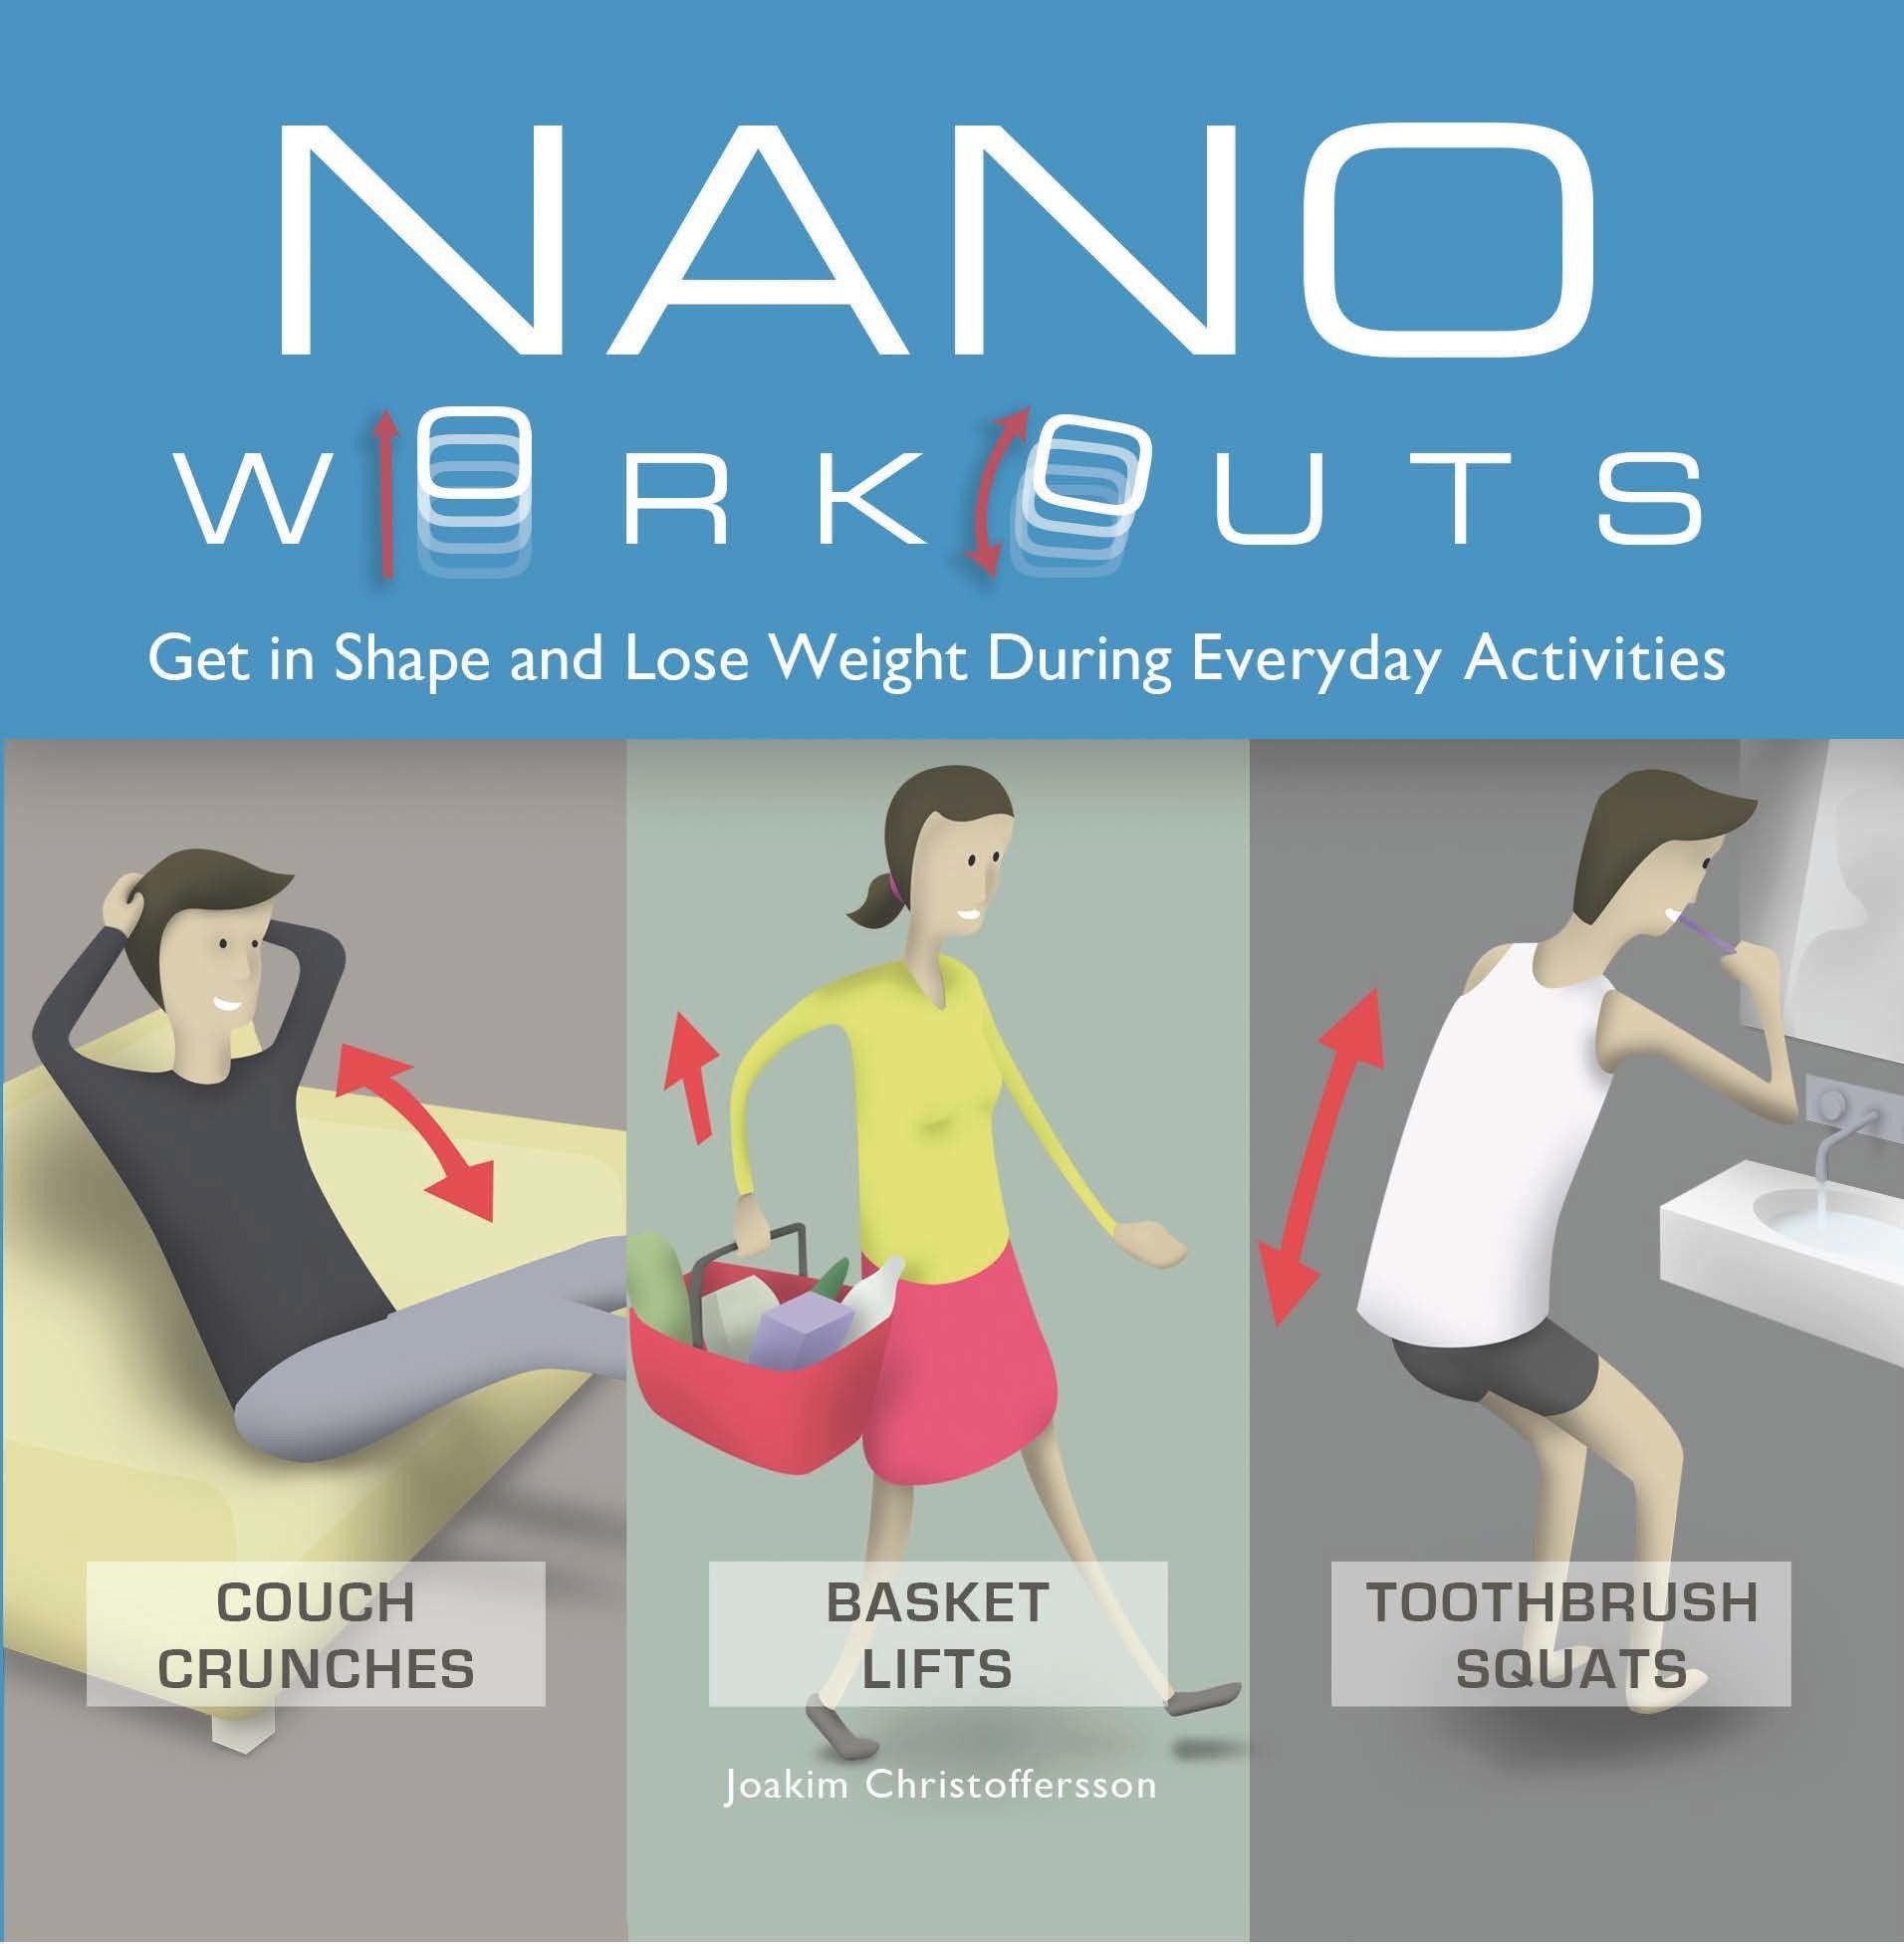 Nano Workouts: Get in Shape and Lose Weight During Everyday Activities pdf